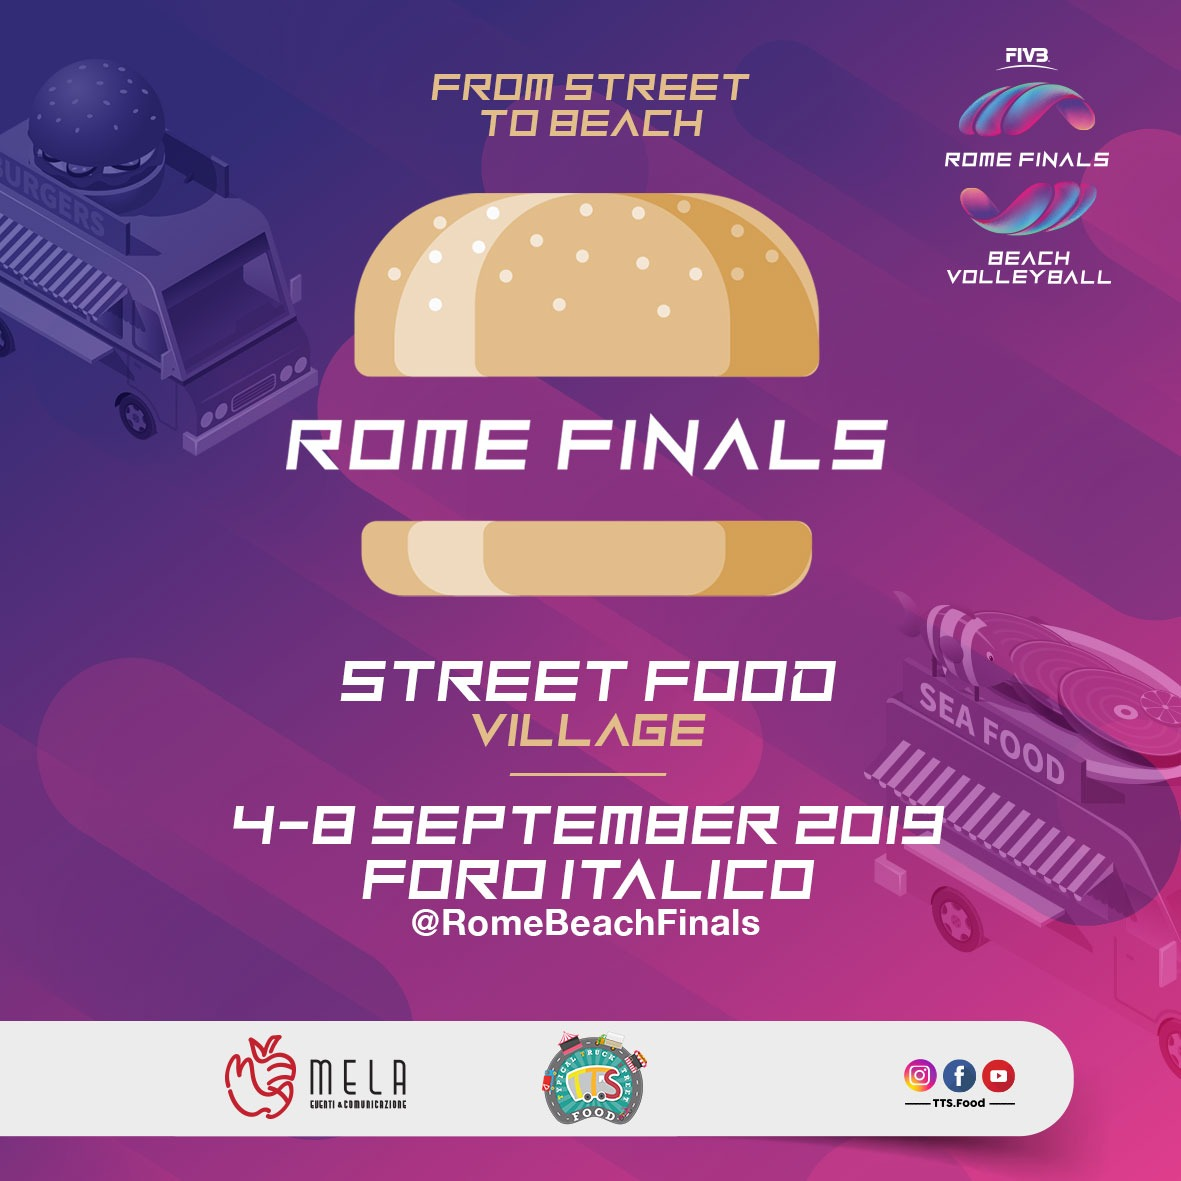 TTSfood al Foro Italico per il Rome Finals Beach Volleyball